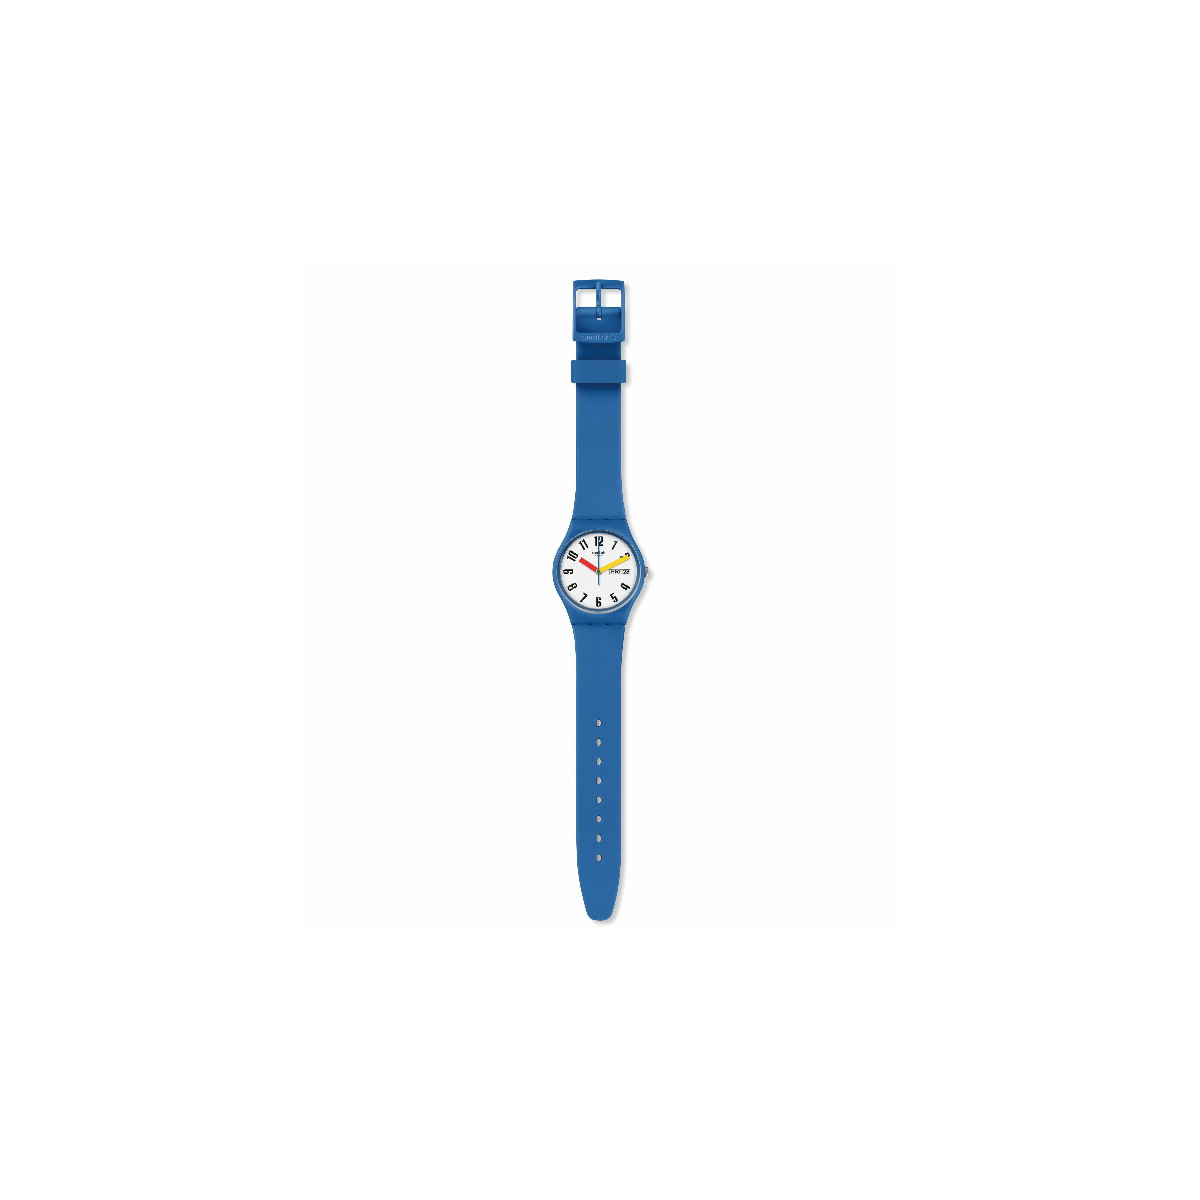 SOBLEU_GS703_SWATCH_OUTLET_50%